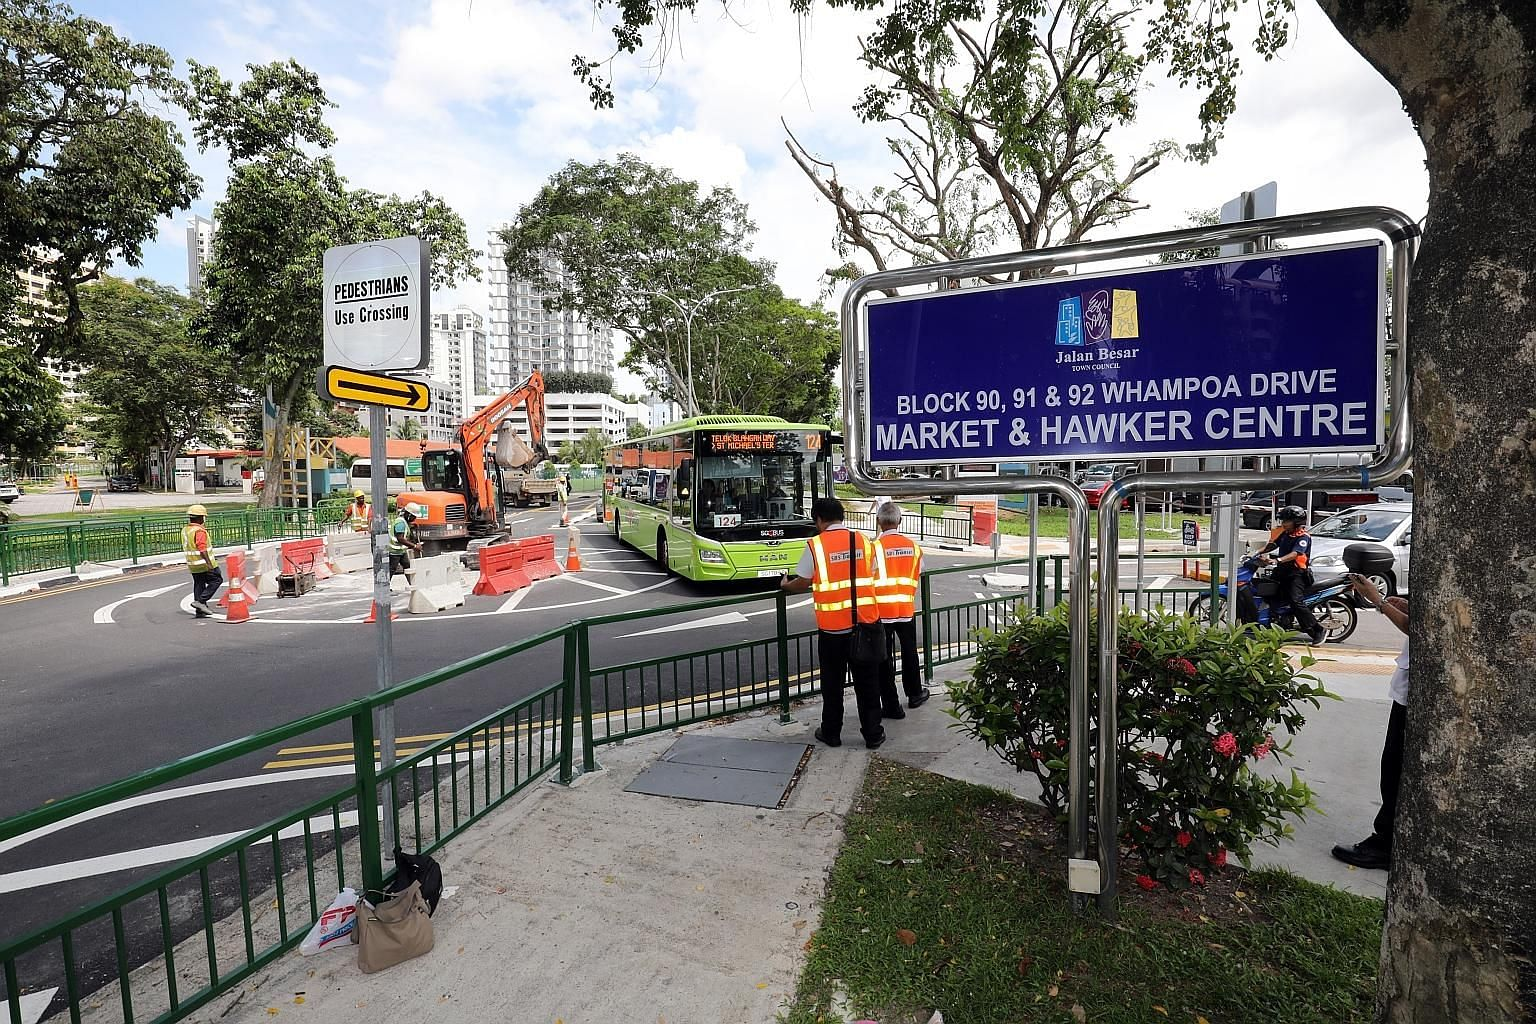 The roundabout is designed to allow larger vehicles, such as buses, to mount part of the central island when necessary to give them extra turning room. The central island of the roundabout will be painted bright yellow, and reflective studs will be p